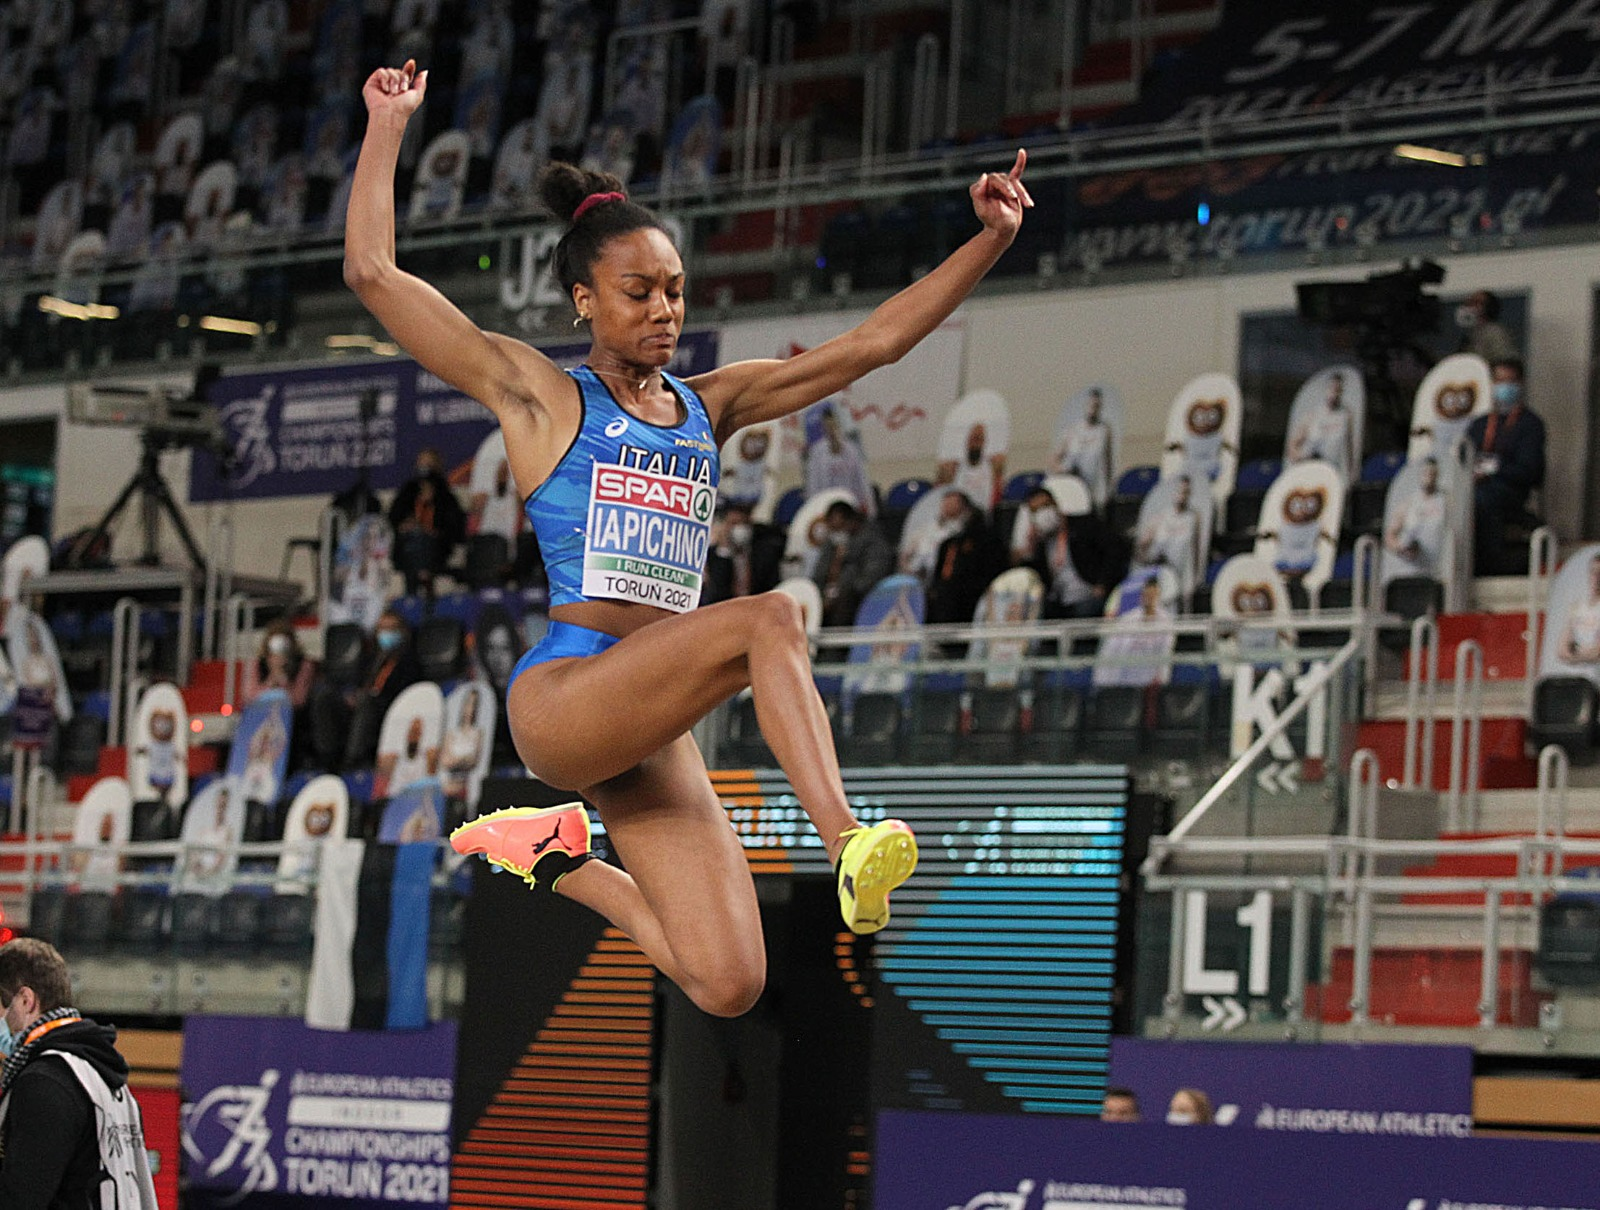 EuroIndoor Torun:BIG Q with 6.70 and see you tomorrow 💙